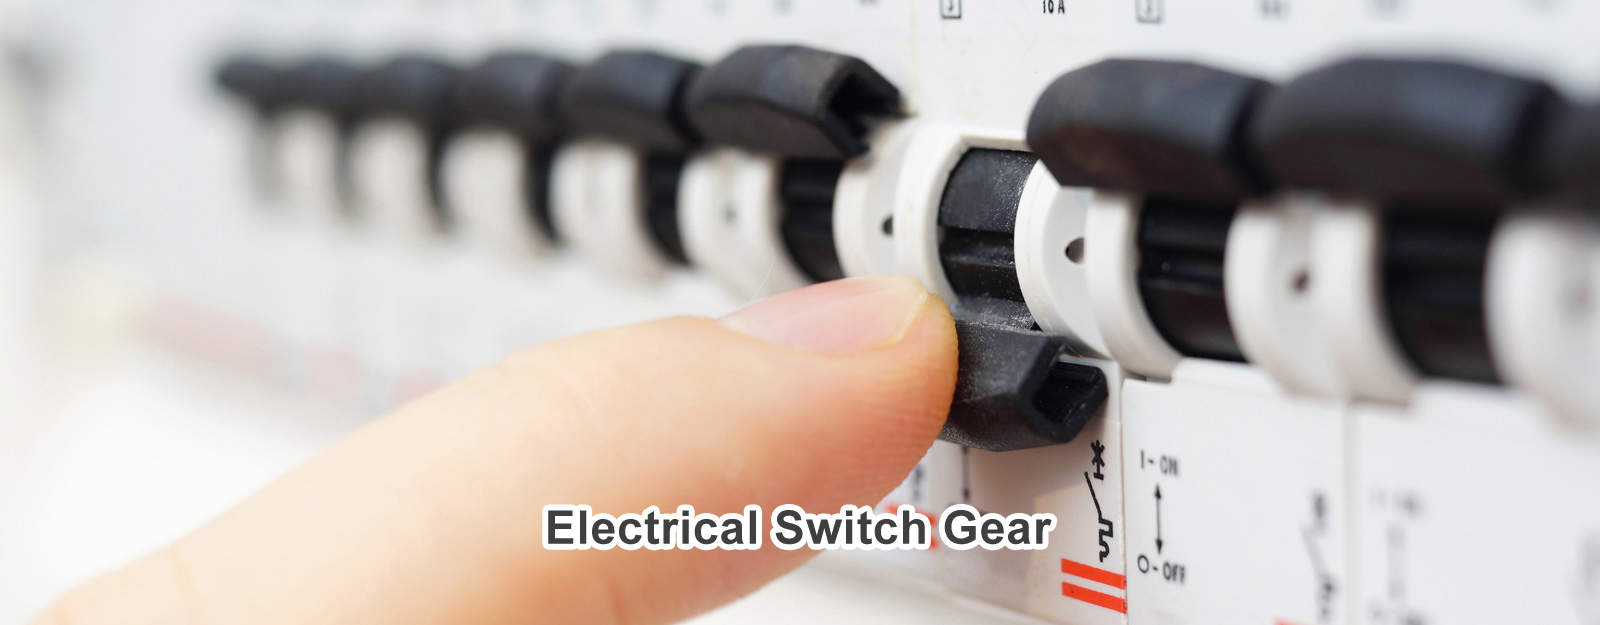 Electrical Switch Gear